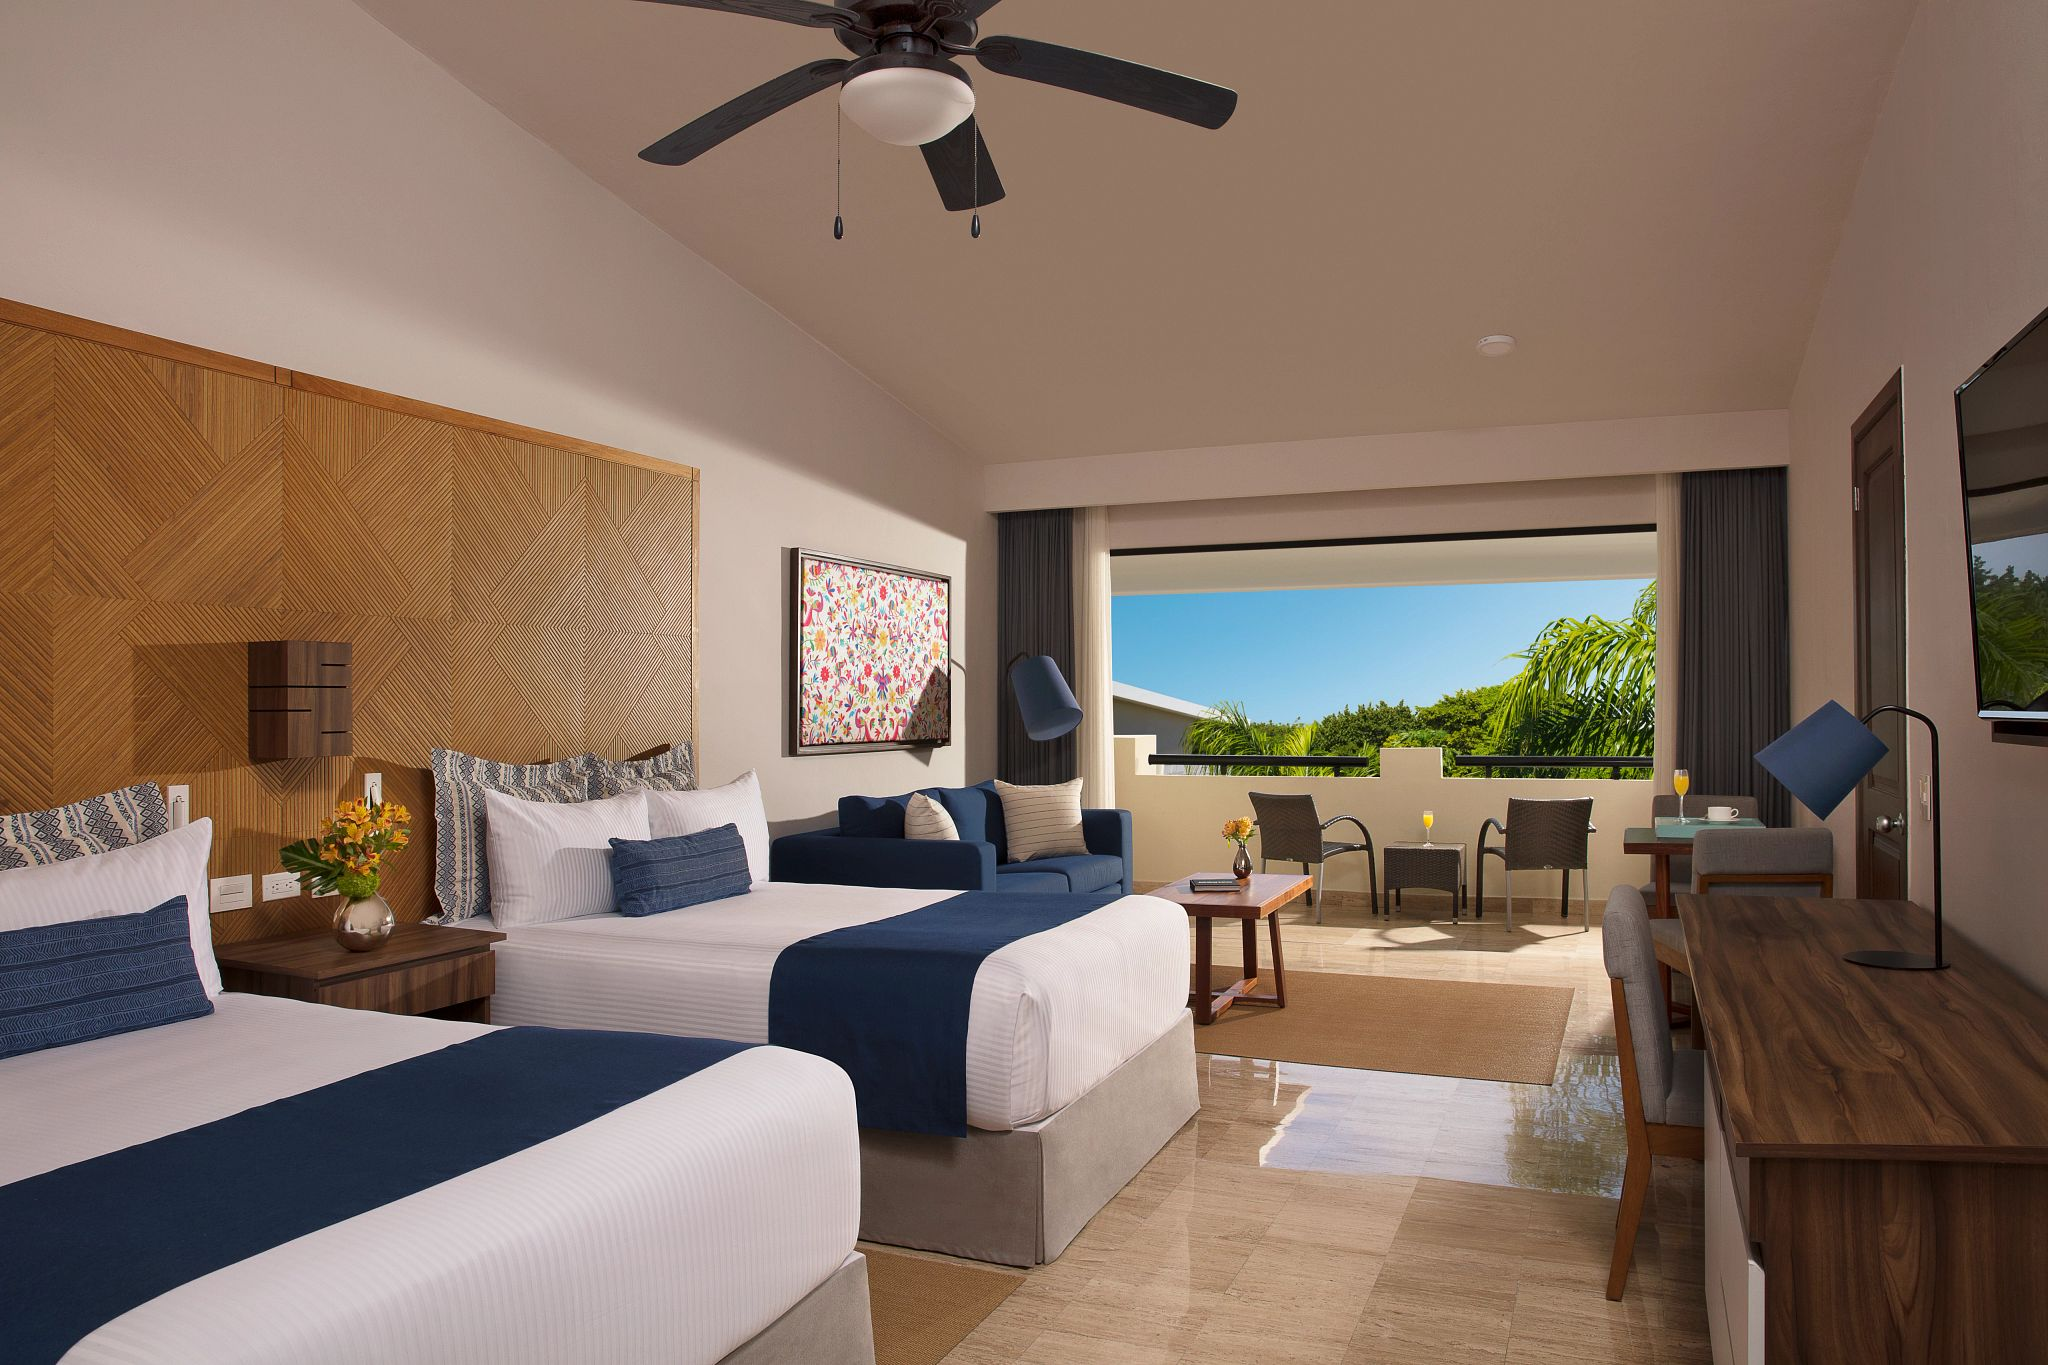 Double bed hotel room with a tropical view